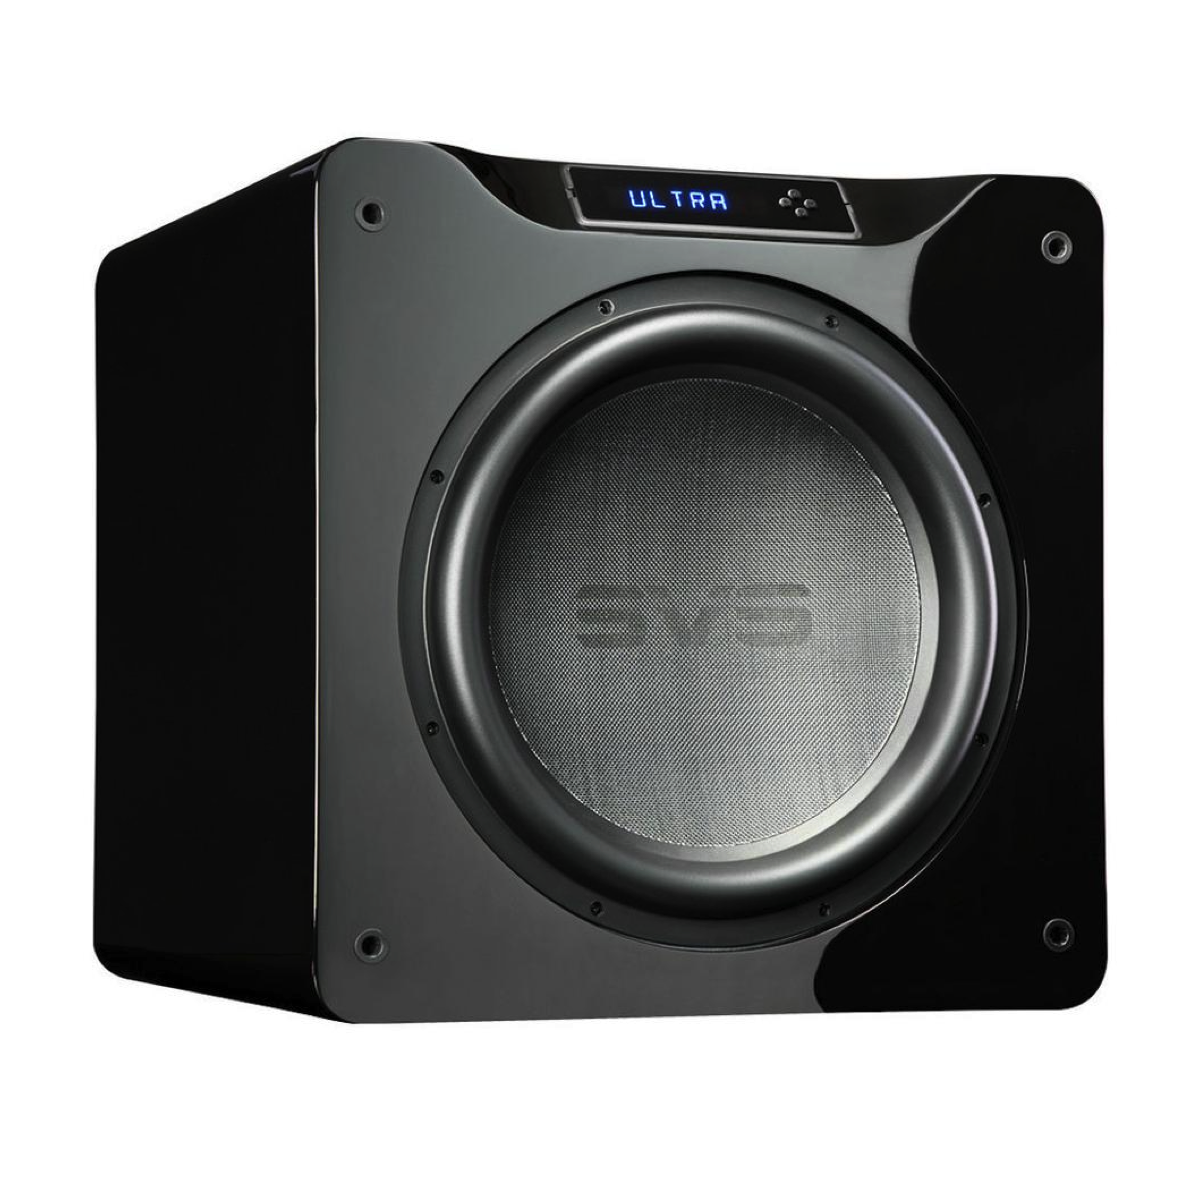 SVS Sound SB 16 Ultra Subwoofer - Piano Gloss Black, SVS Sound, Subwoofer - AVStore.in